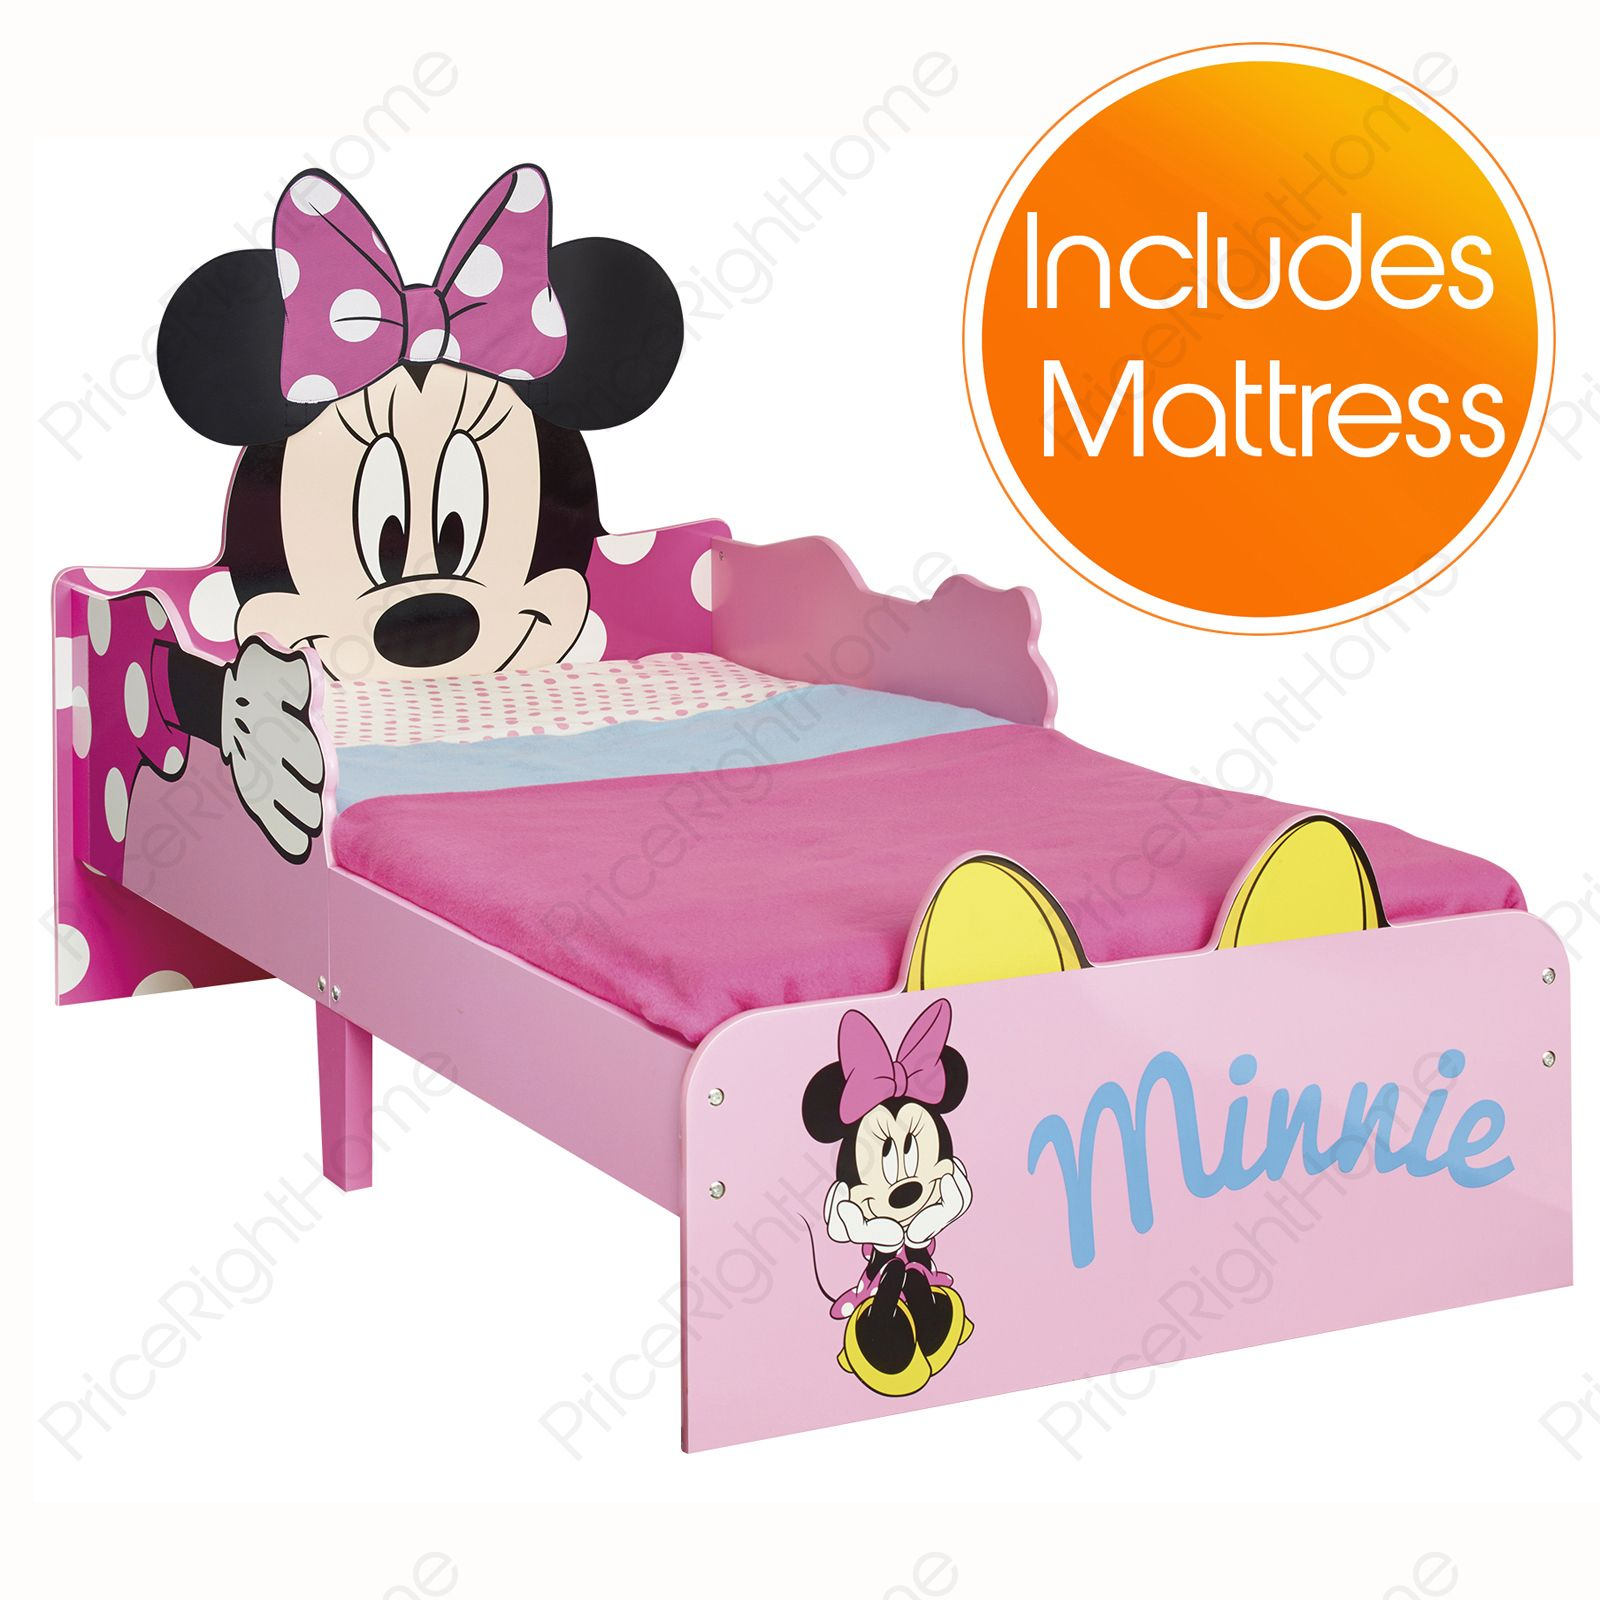 minnie mouse snuggletime mdf kinderbett matratze neues schlafzimmer ebay. Black Bedroom Furniture Sets. Home Design Ideas